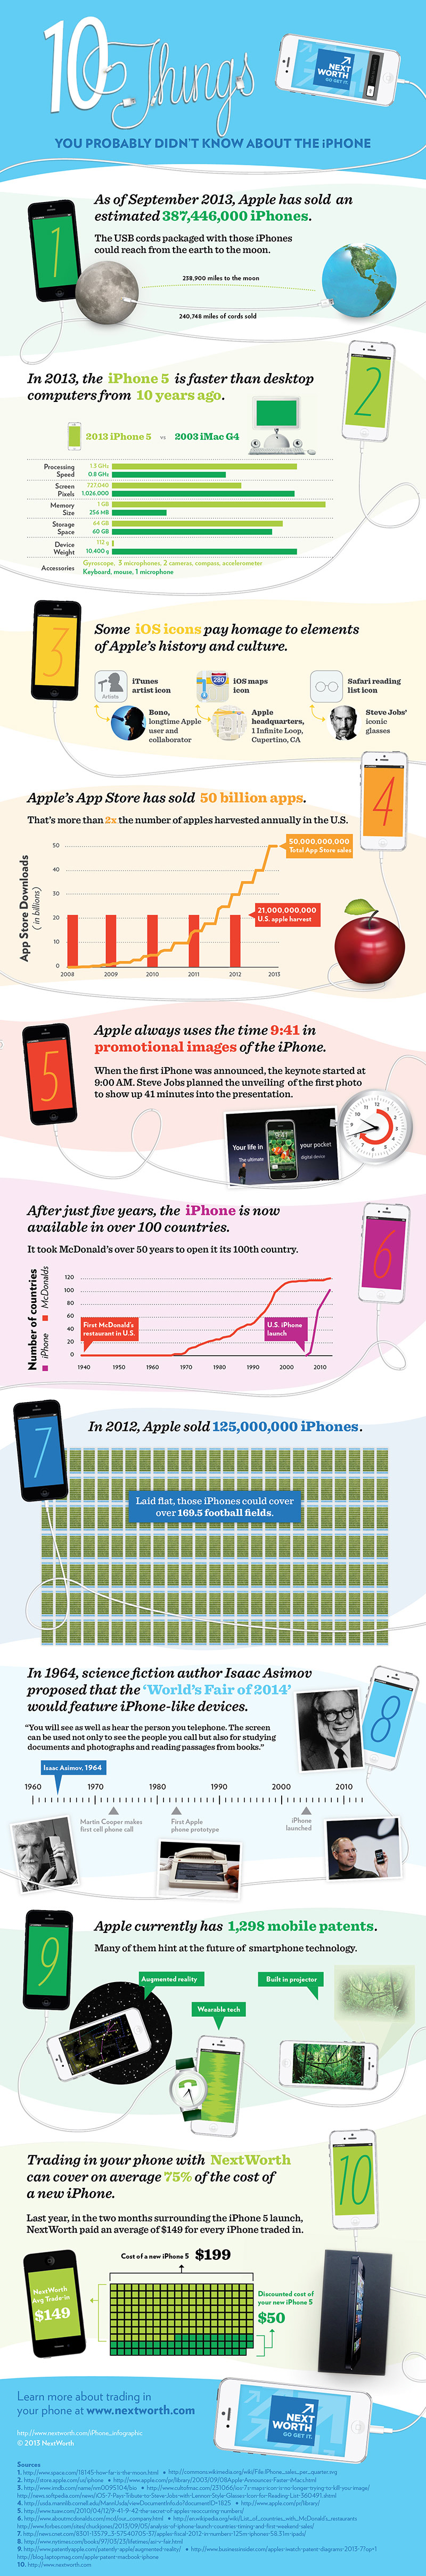 iPhone Facts Infographic